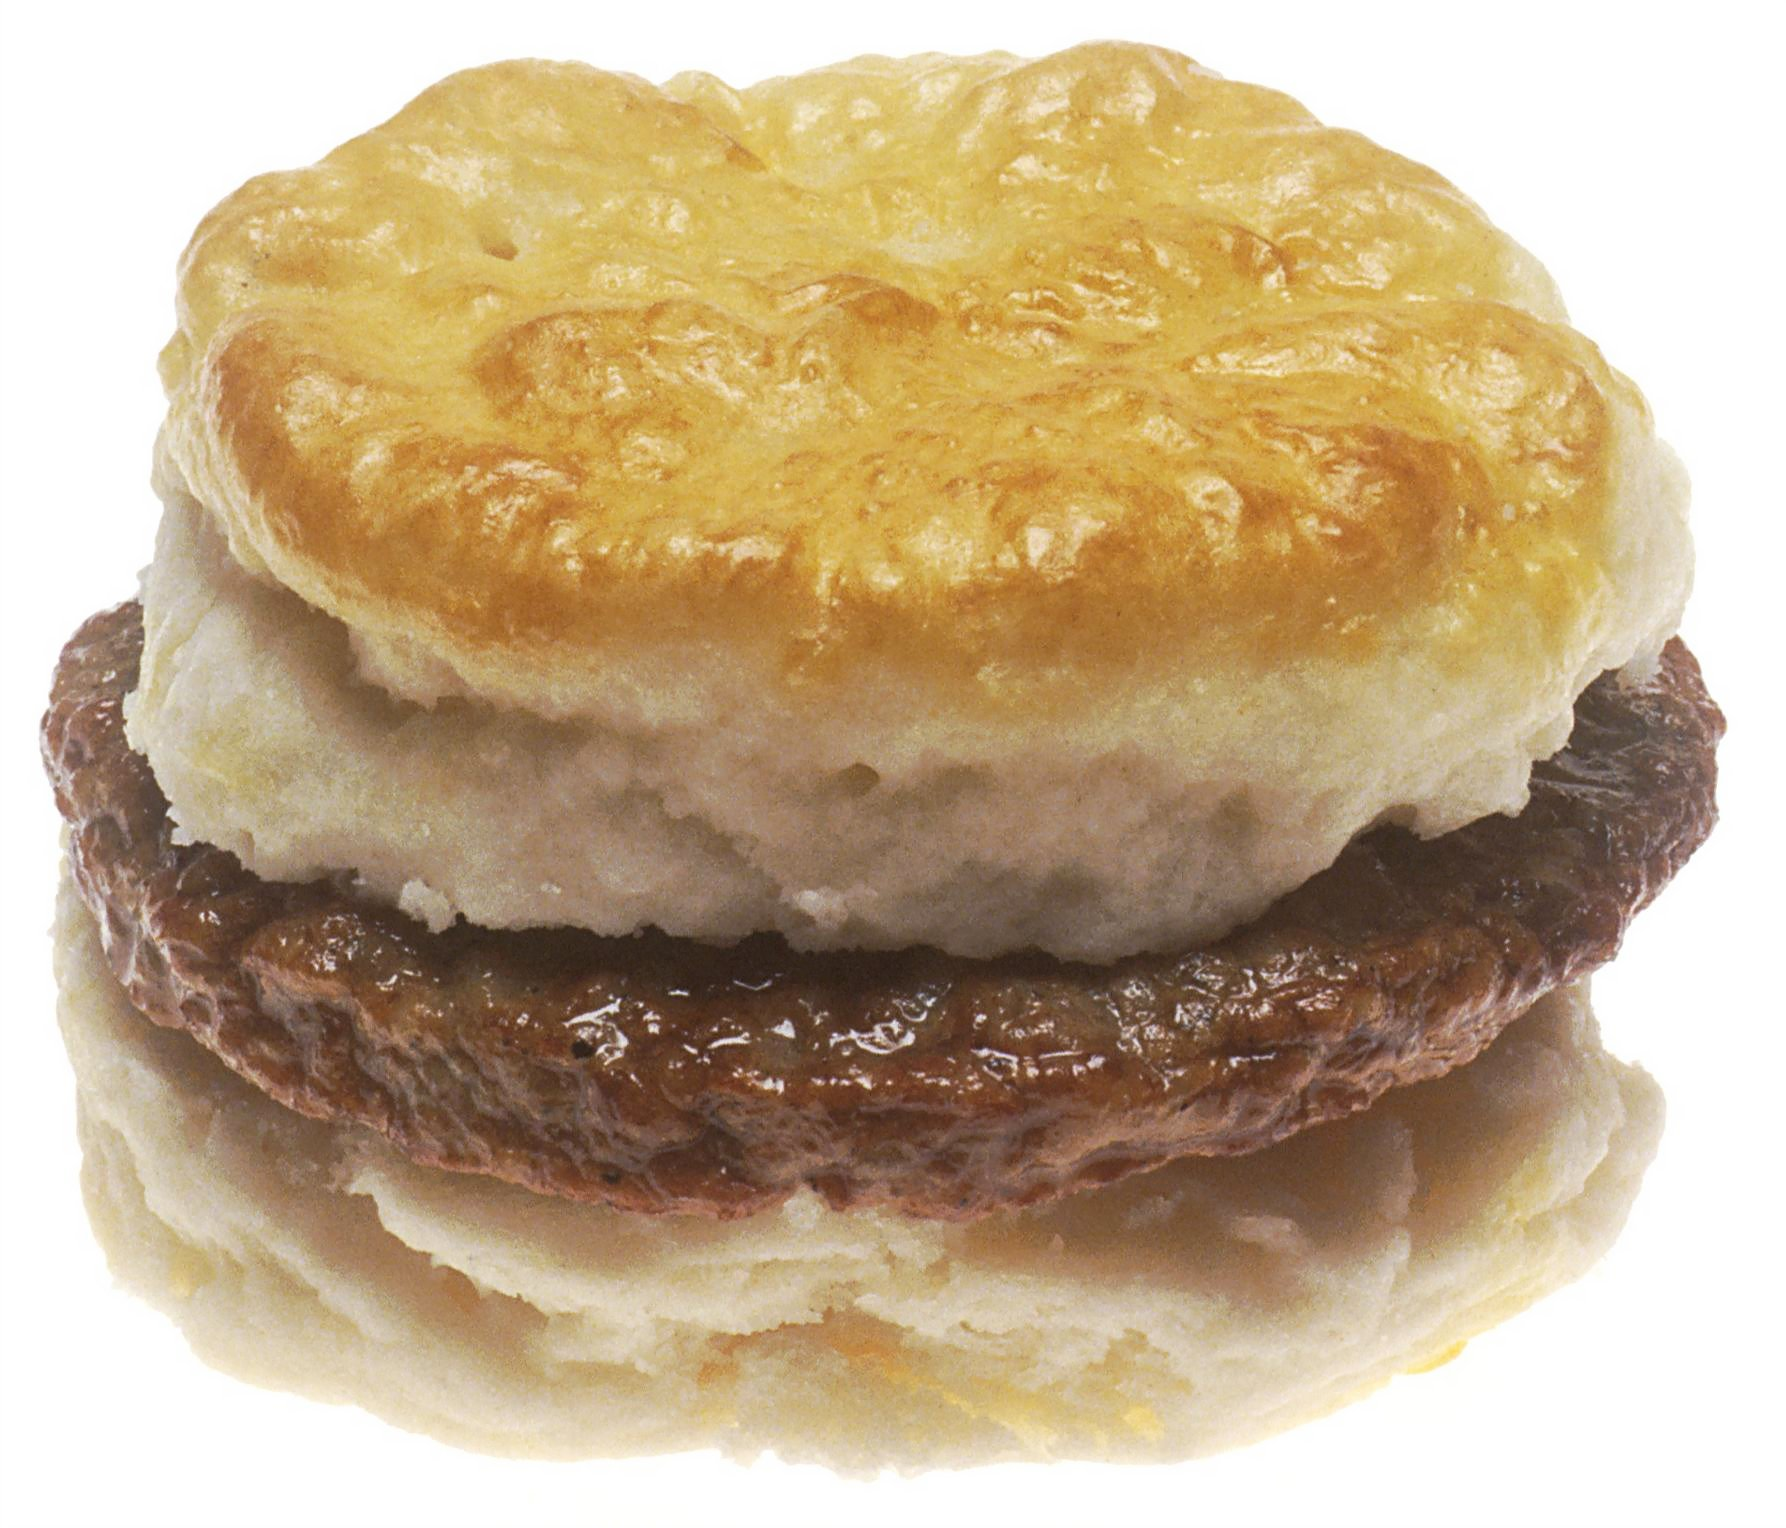 File:Sausage biscuit (1).jpg - Wikimedia Commons